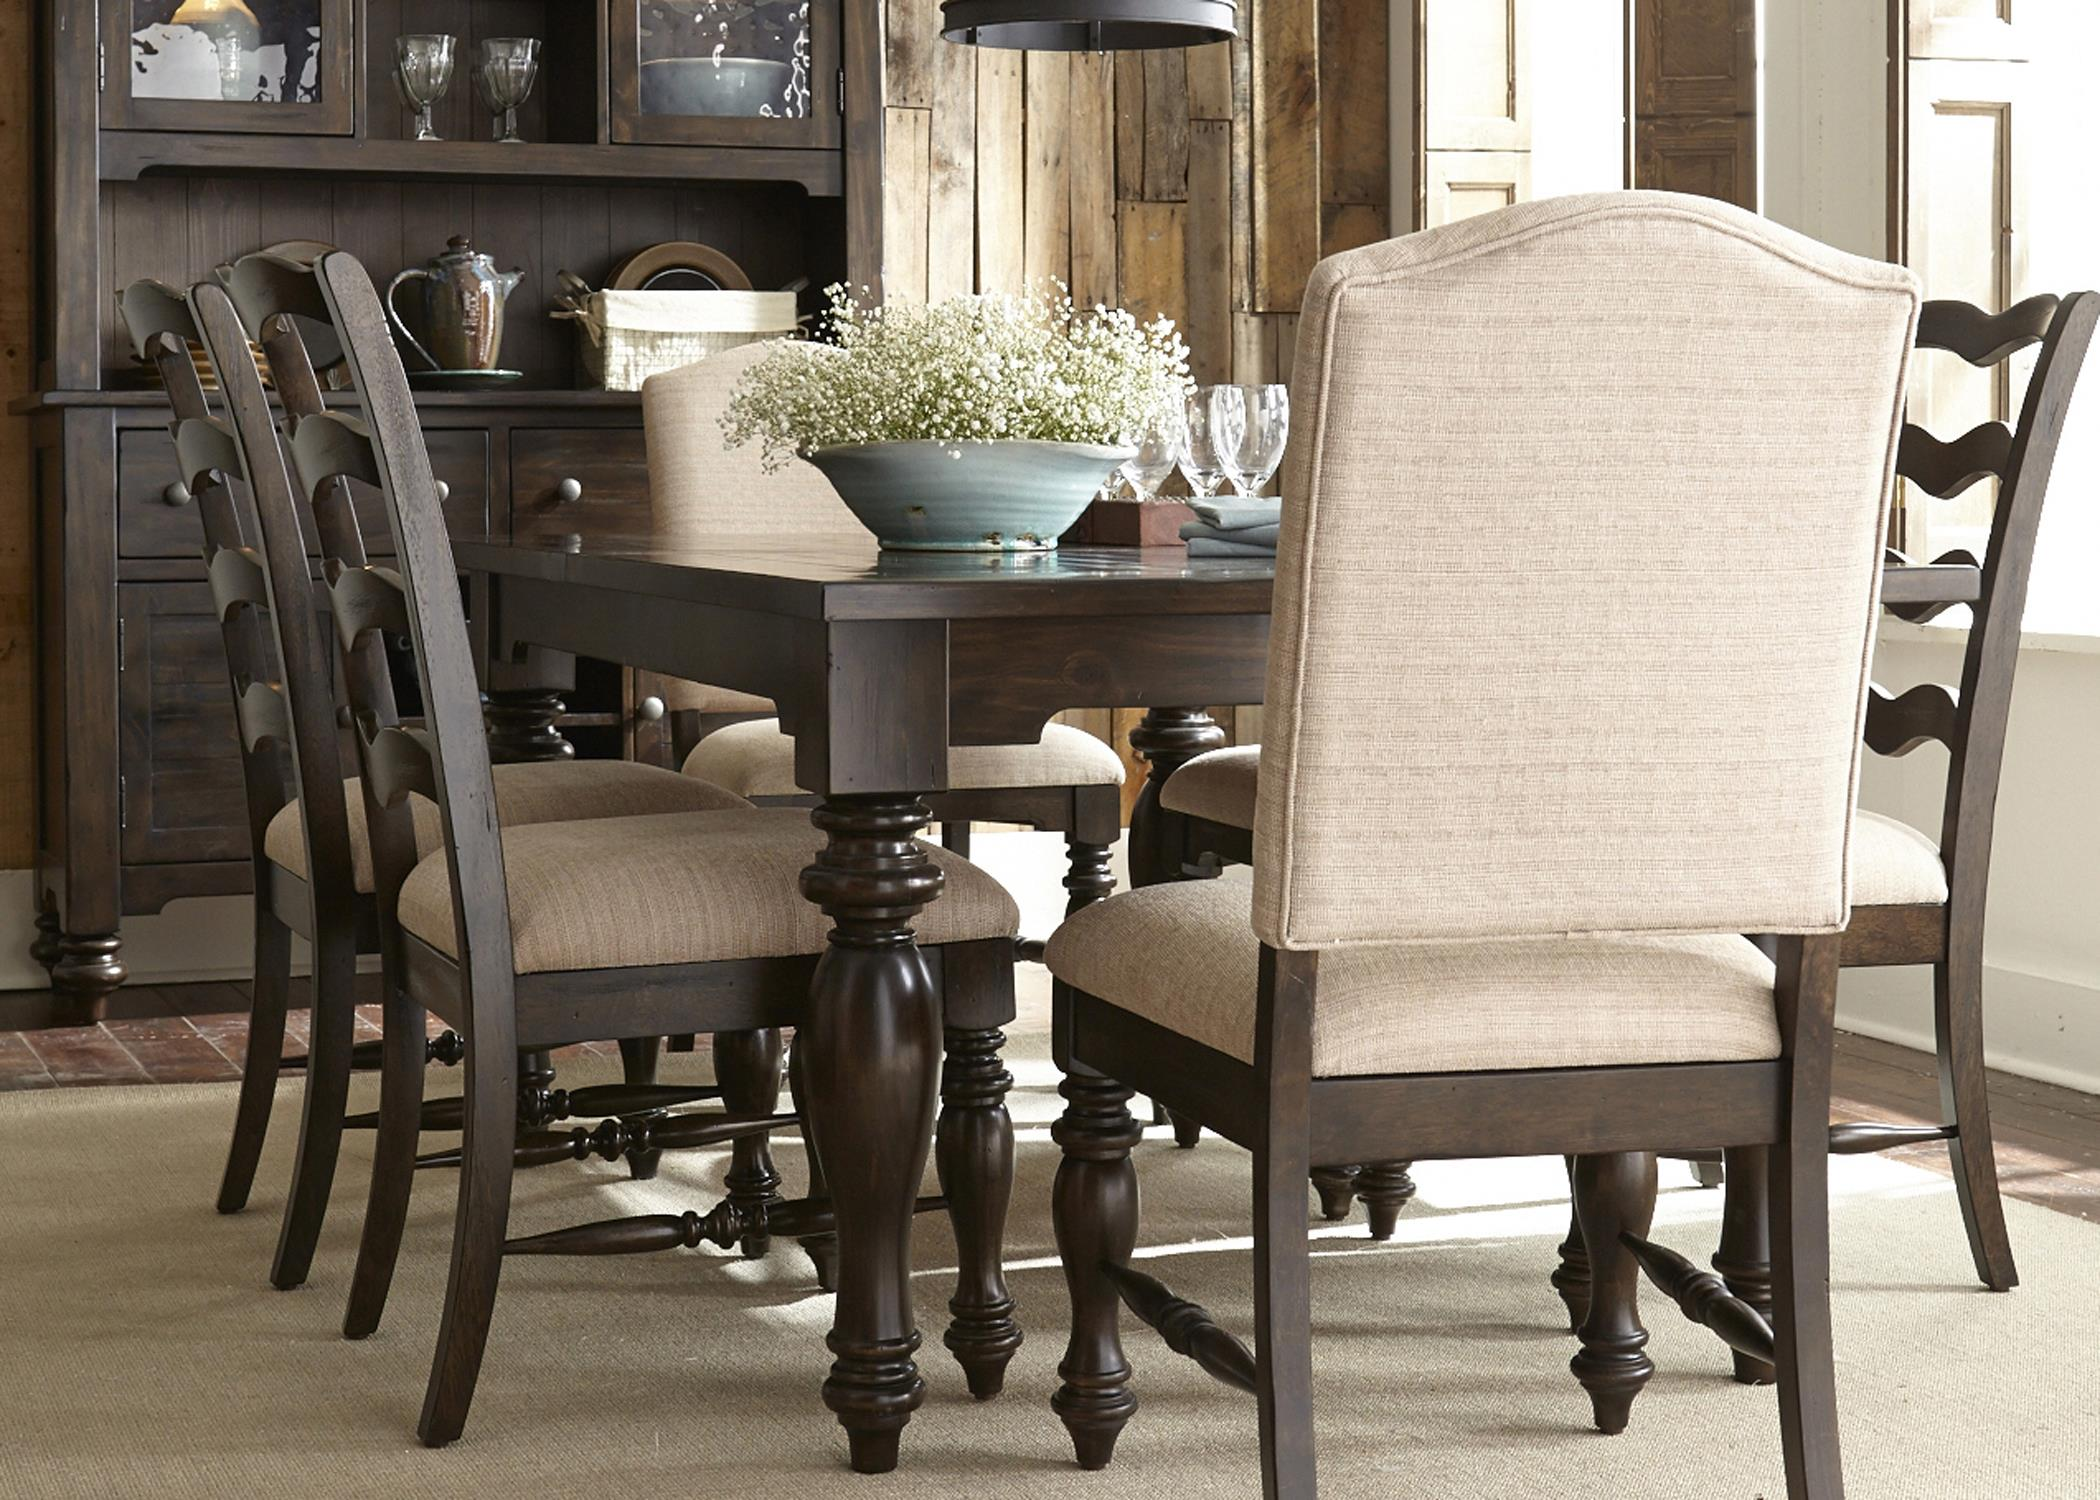 Image of: upholstered dining chair style